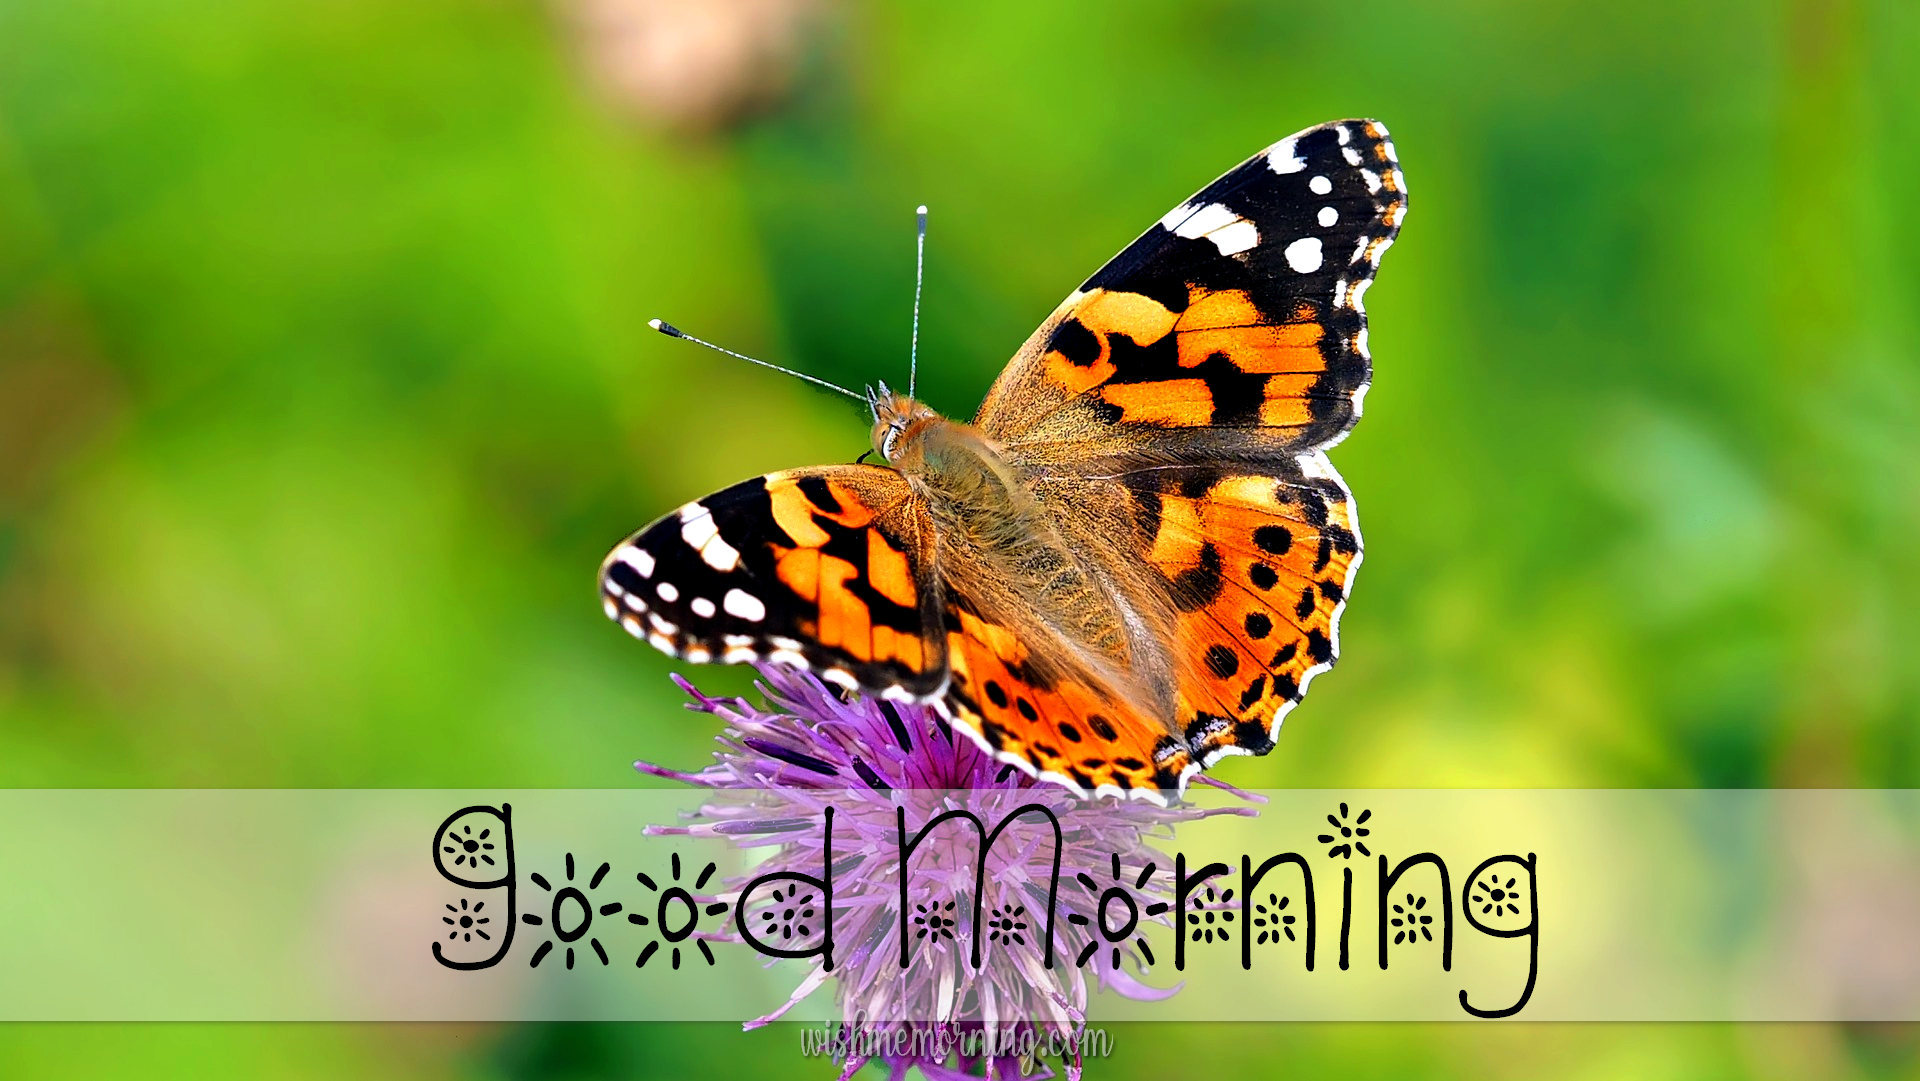 Beautiful Butterfly Good Morning Images wishmemorning.com 4